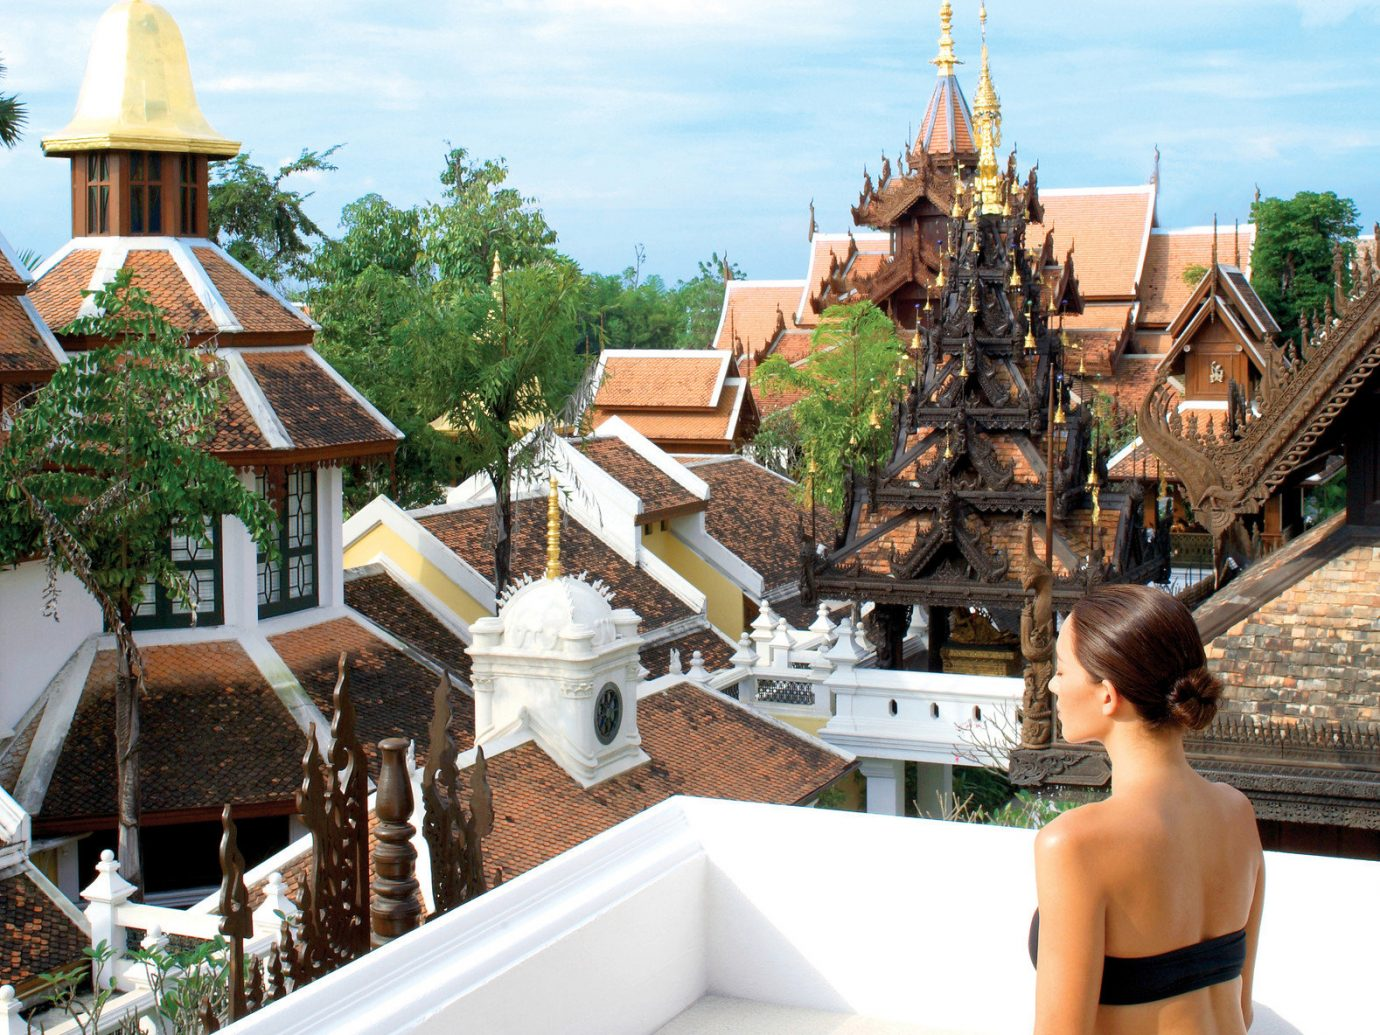 Health + Wellness Hotels Spa Retreats outdoor person building vacation temple wat Resort place of worship travel amusement park